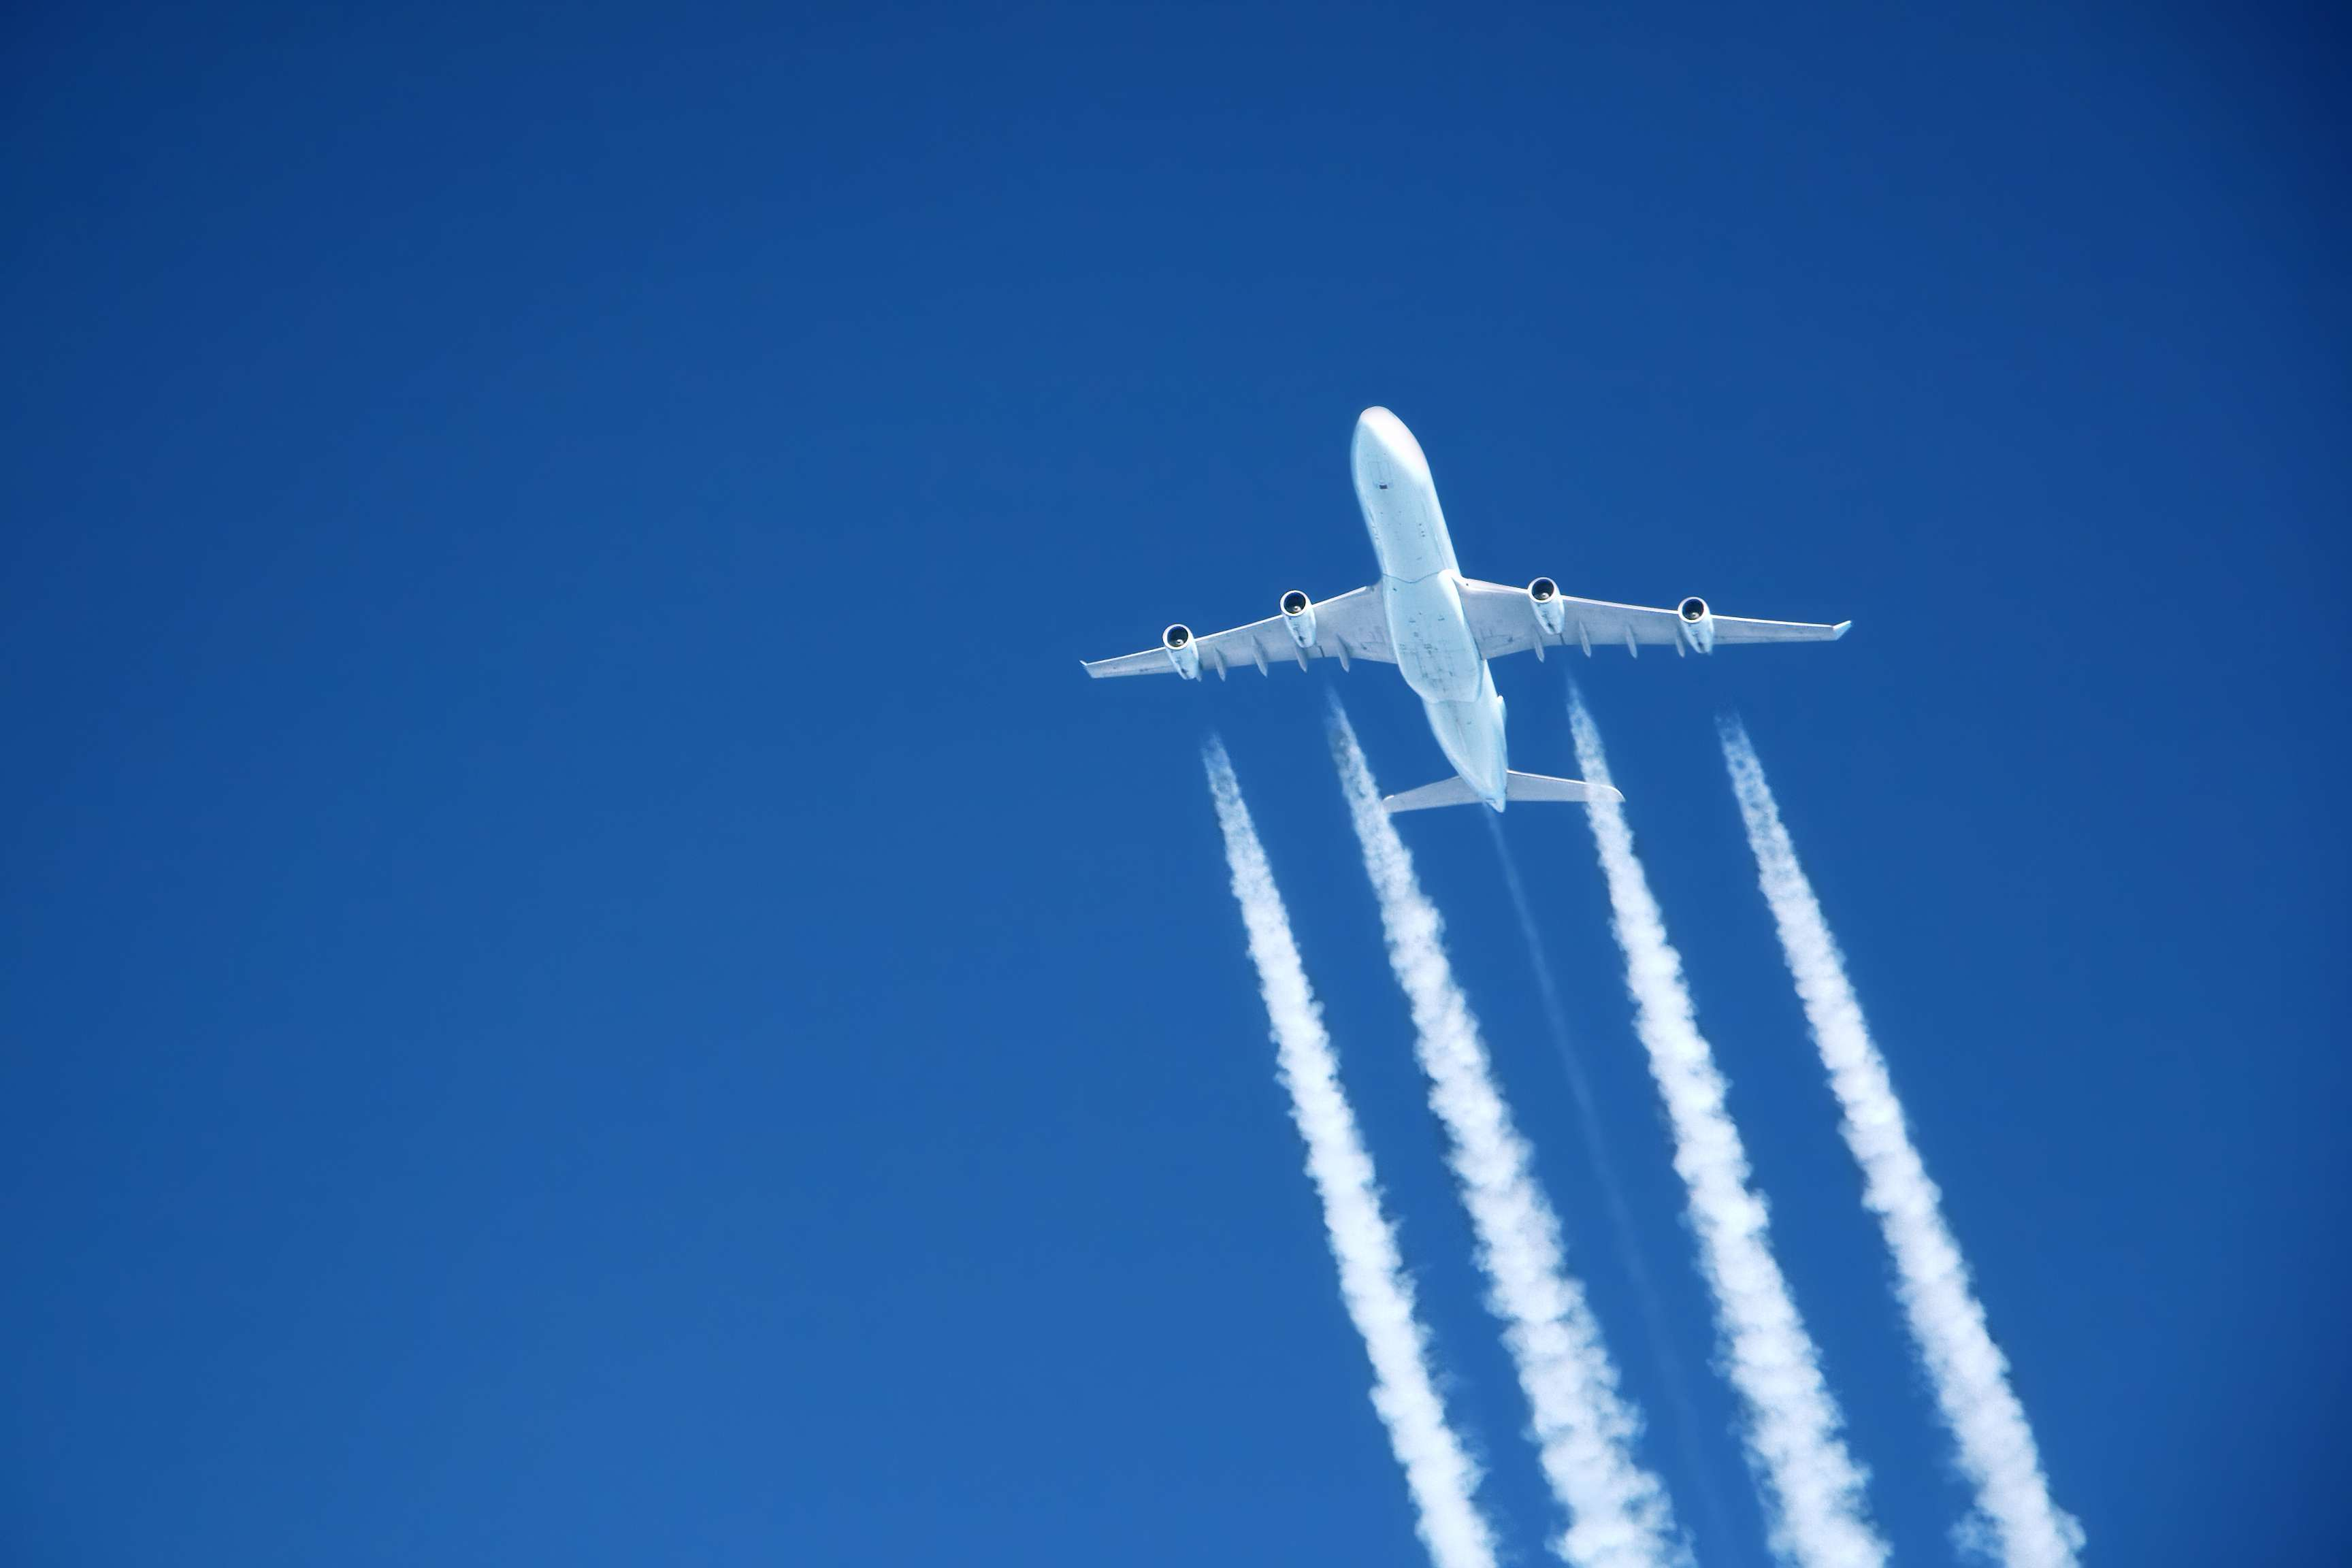 Airplane creating contrail clouds in blue sky